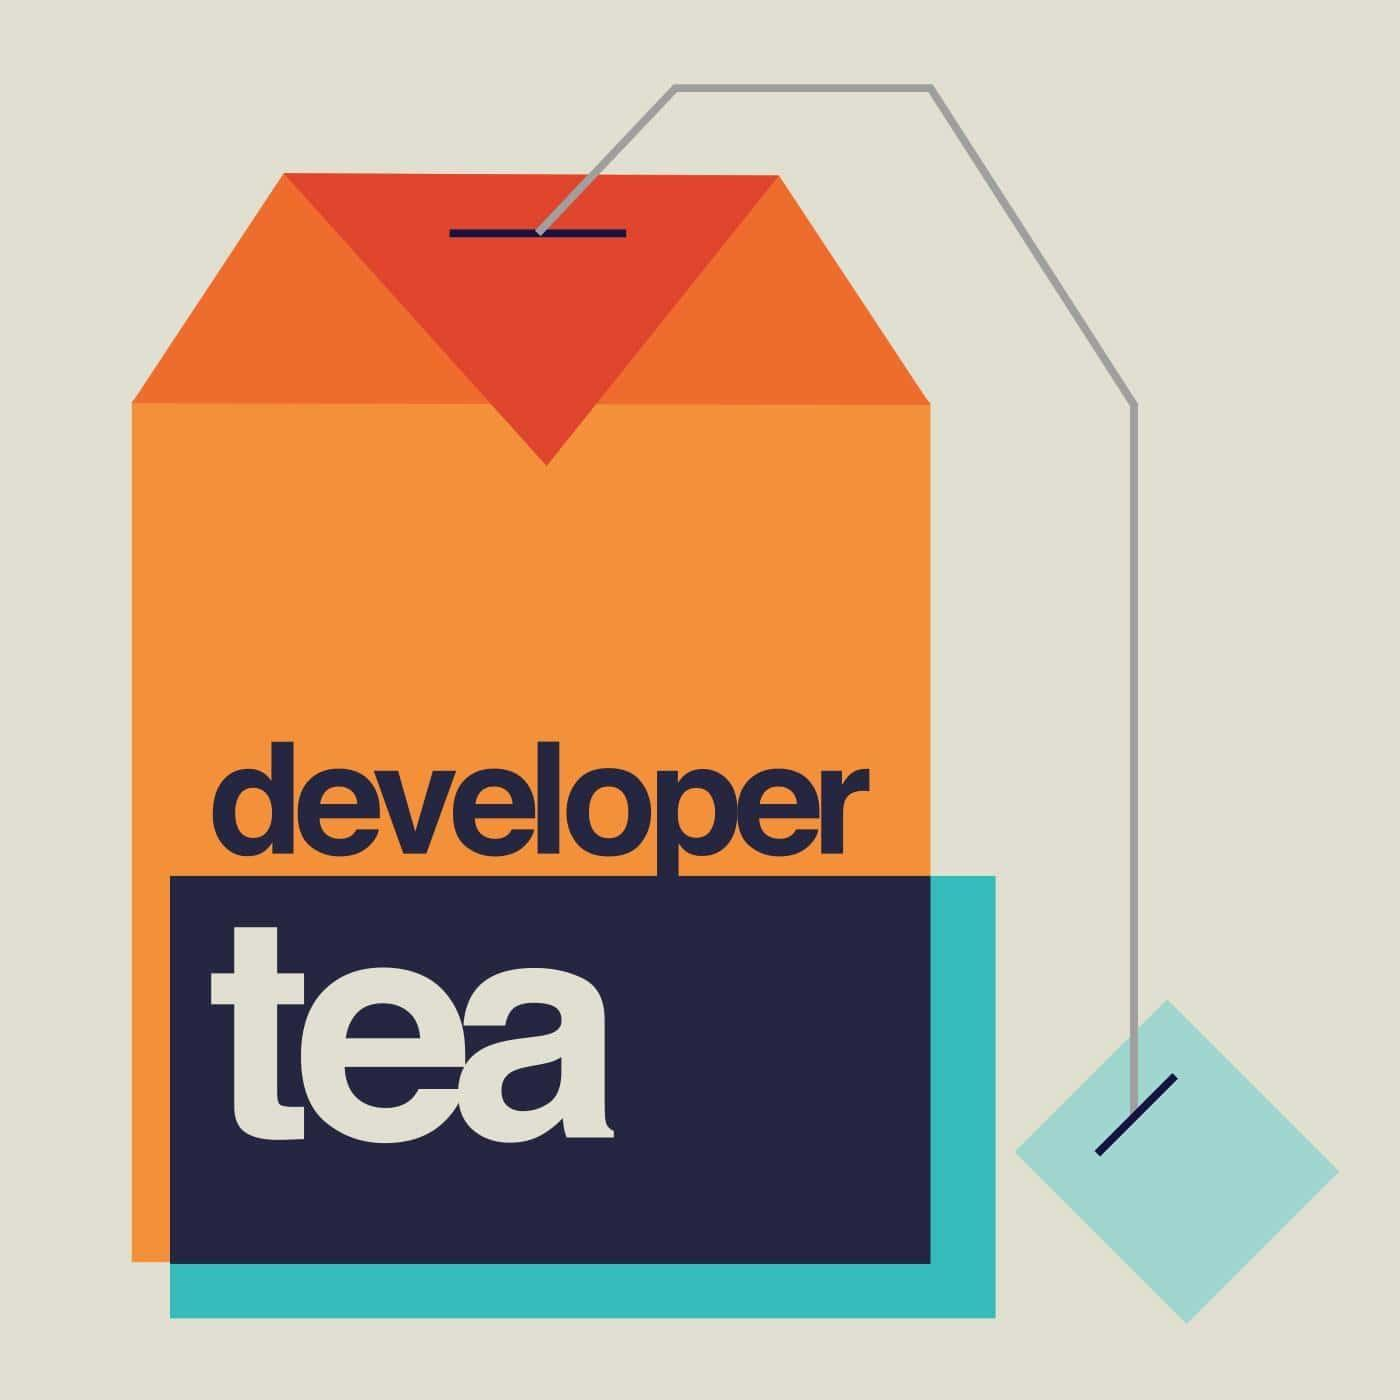 developertea-min.jpeg